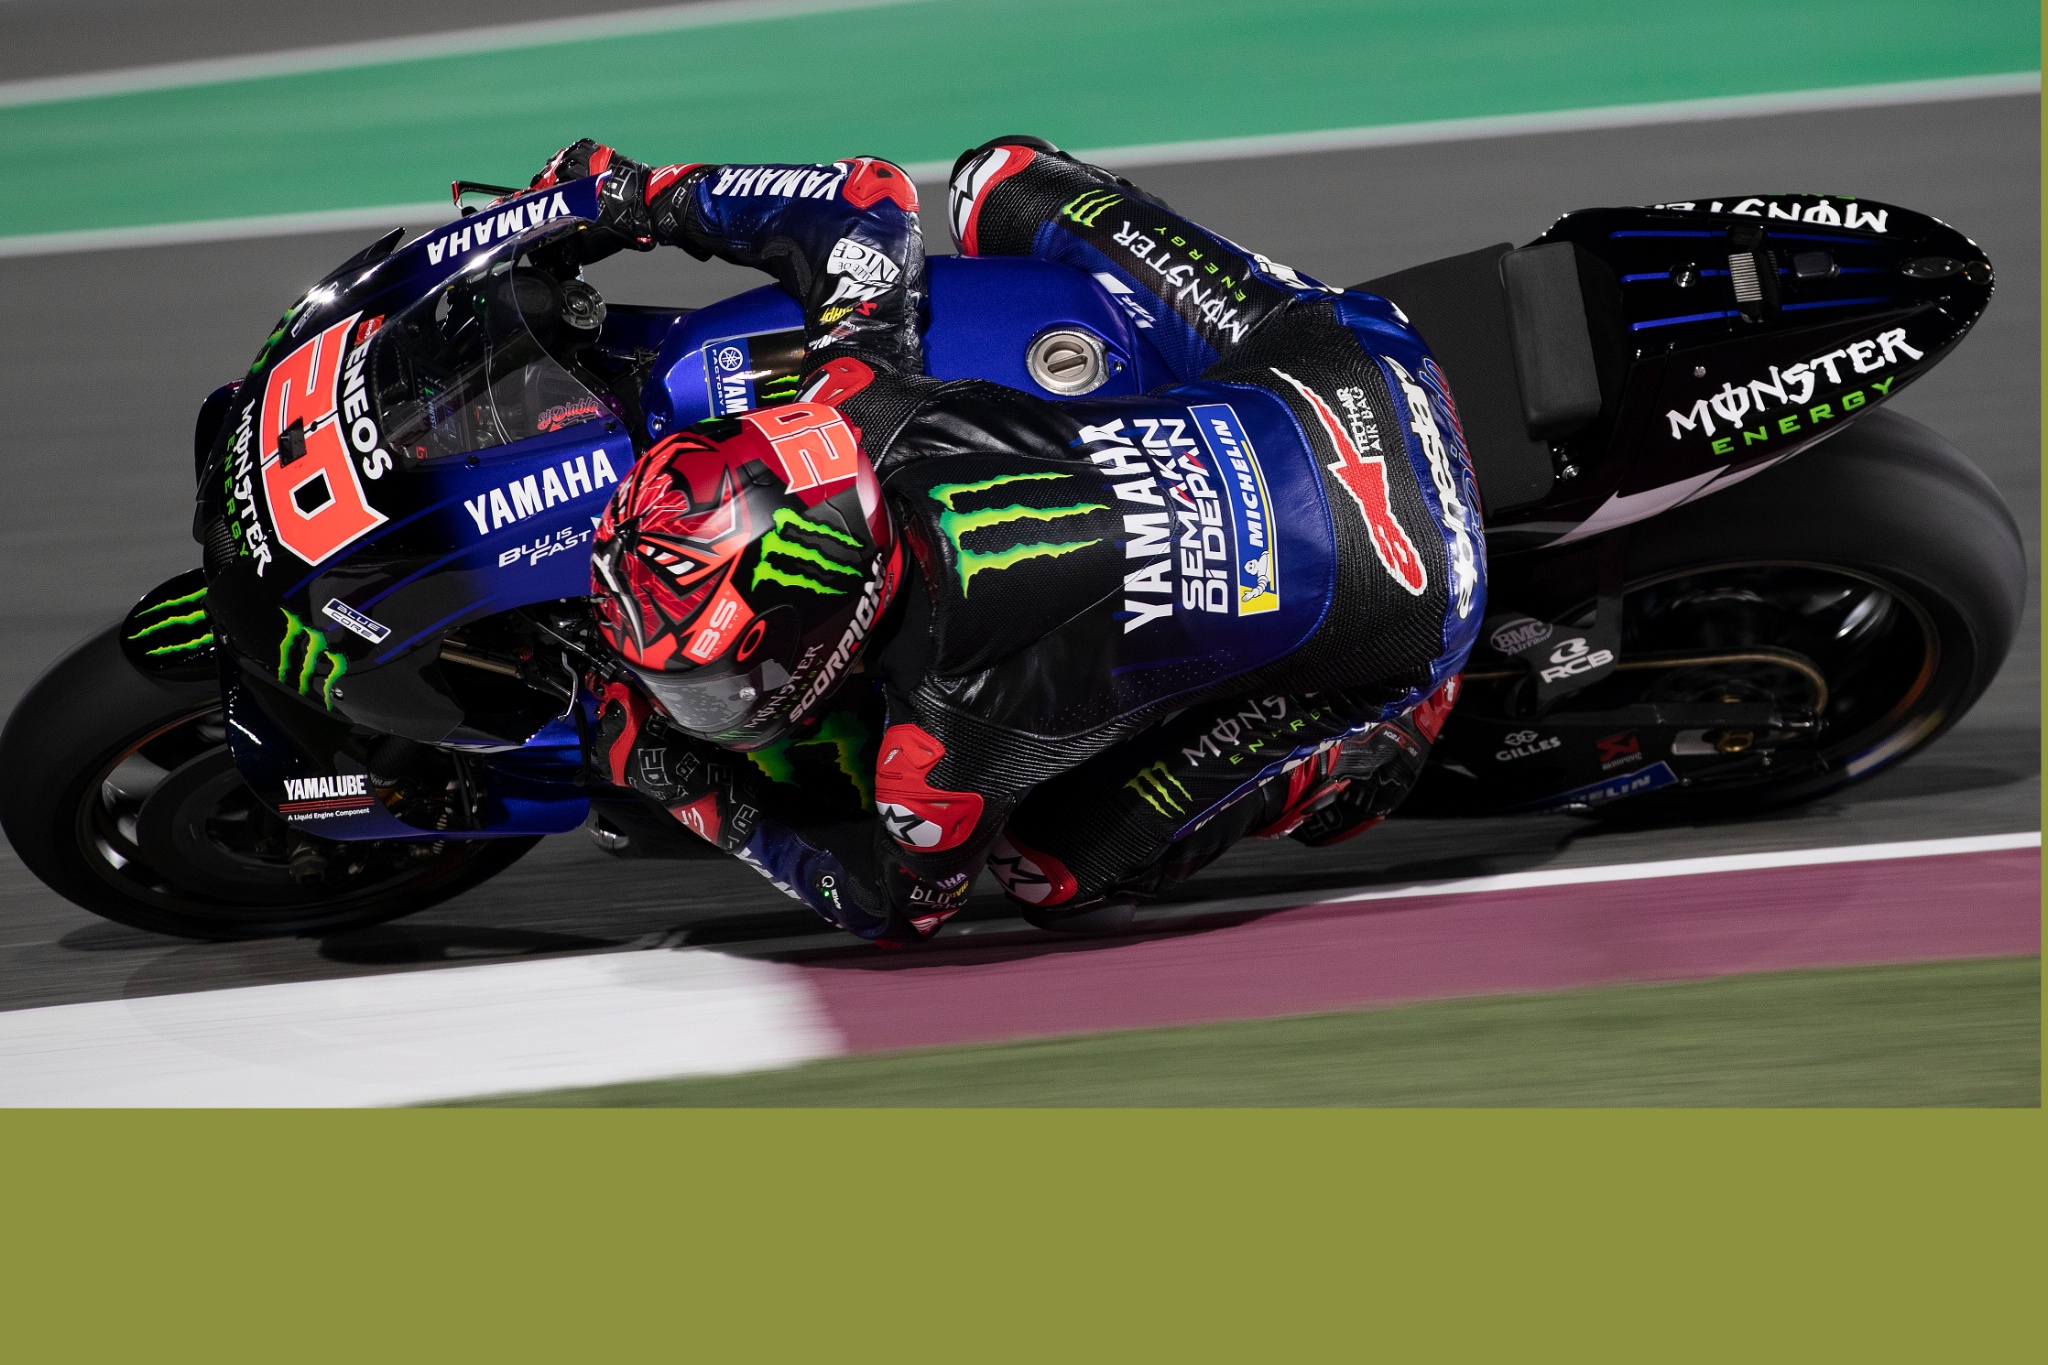 Fabio Quartararo Qatar MotoGP Test, 7 March 2021